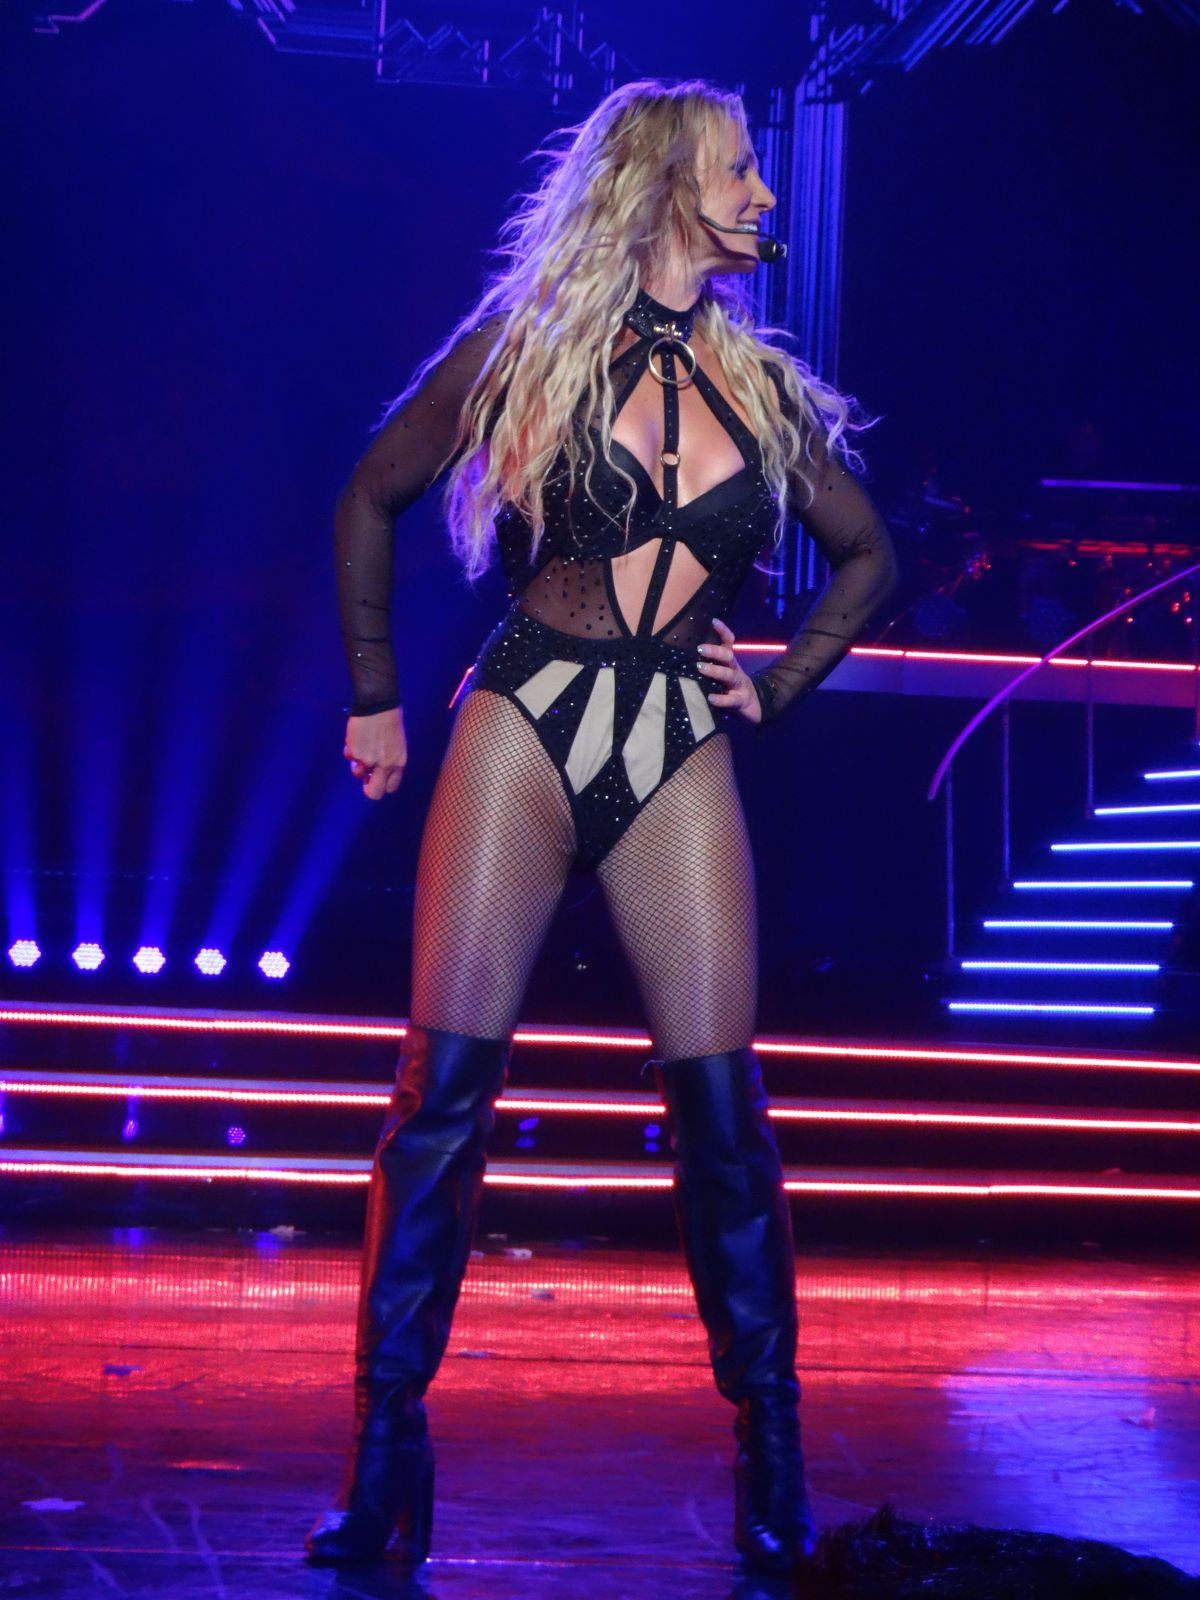 Opinion britney spears fishnet pantyhose